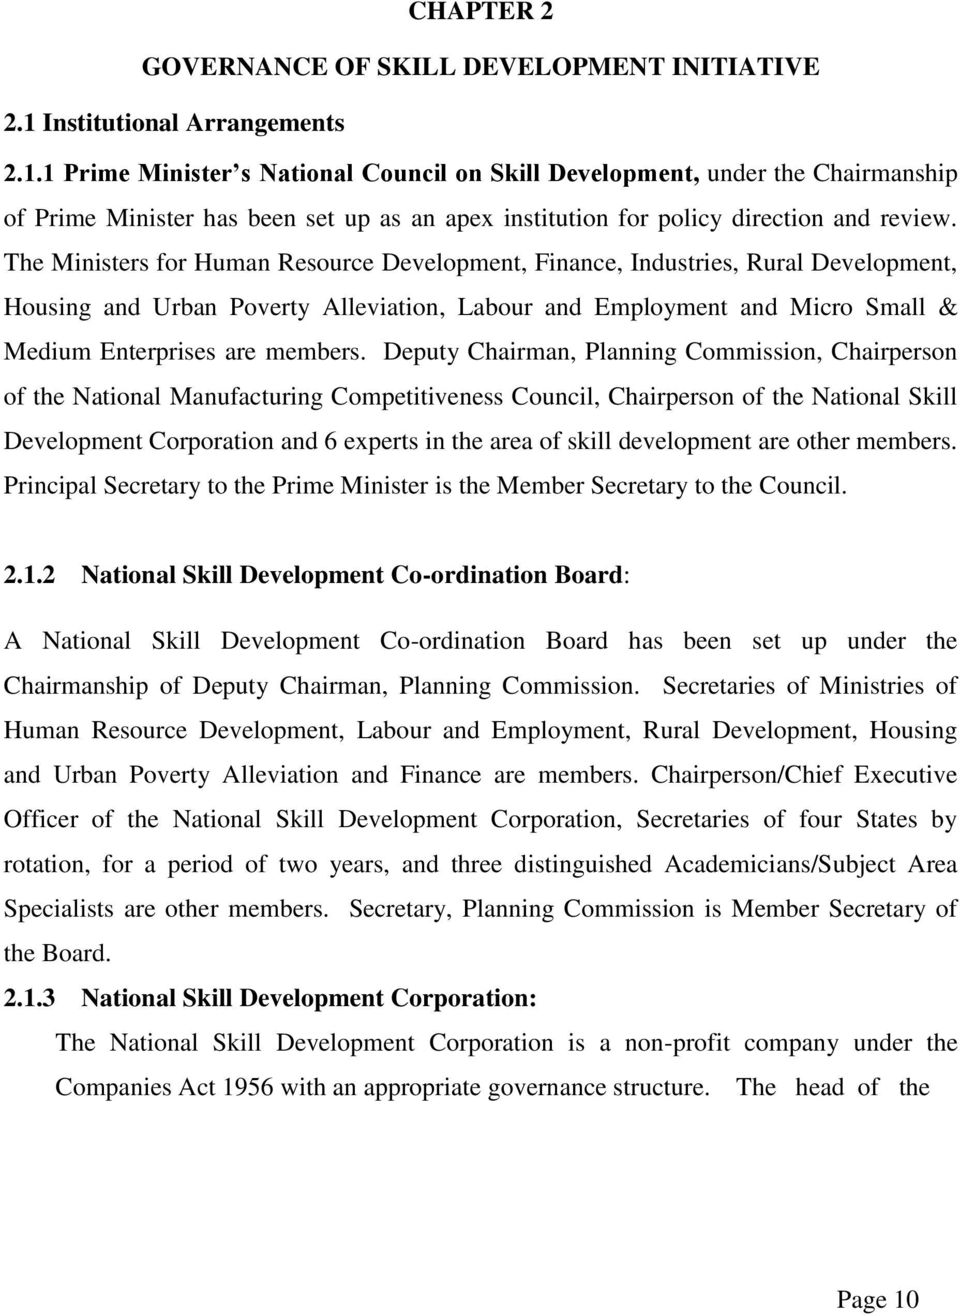 1 Prime Minister s National Council on Skill Development, under the Chairmanship of Prime Minister has been set up as an apex institution for policy direction and review.